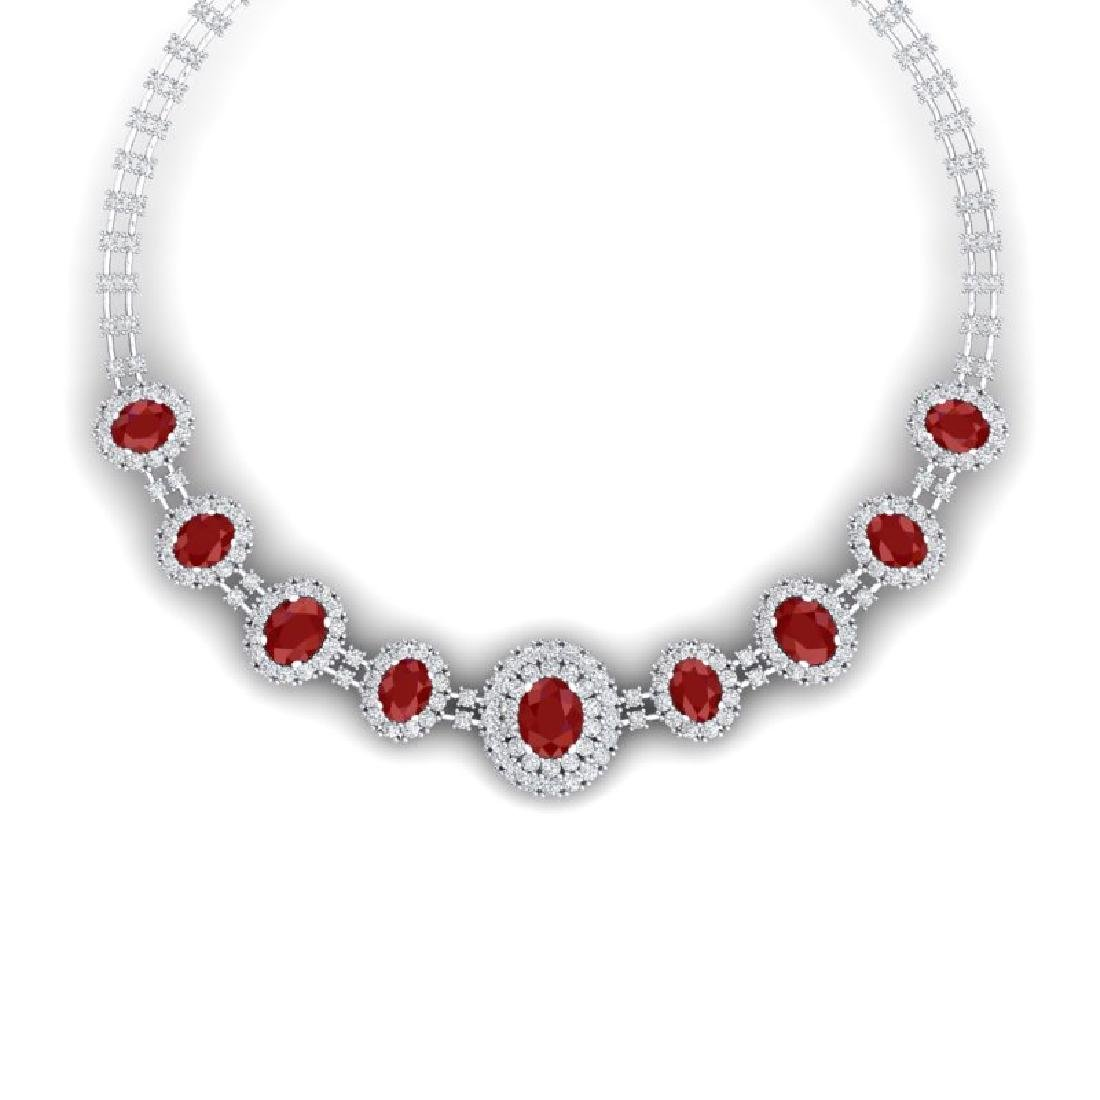 45.69 CTW Royalty Ruby & VS Diamond Necklace 18K White